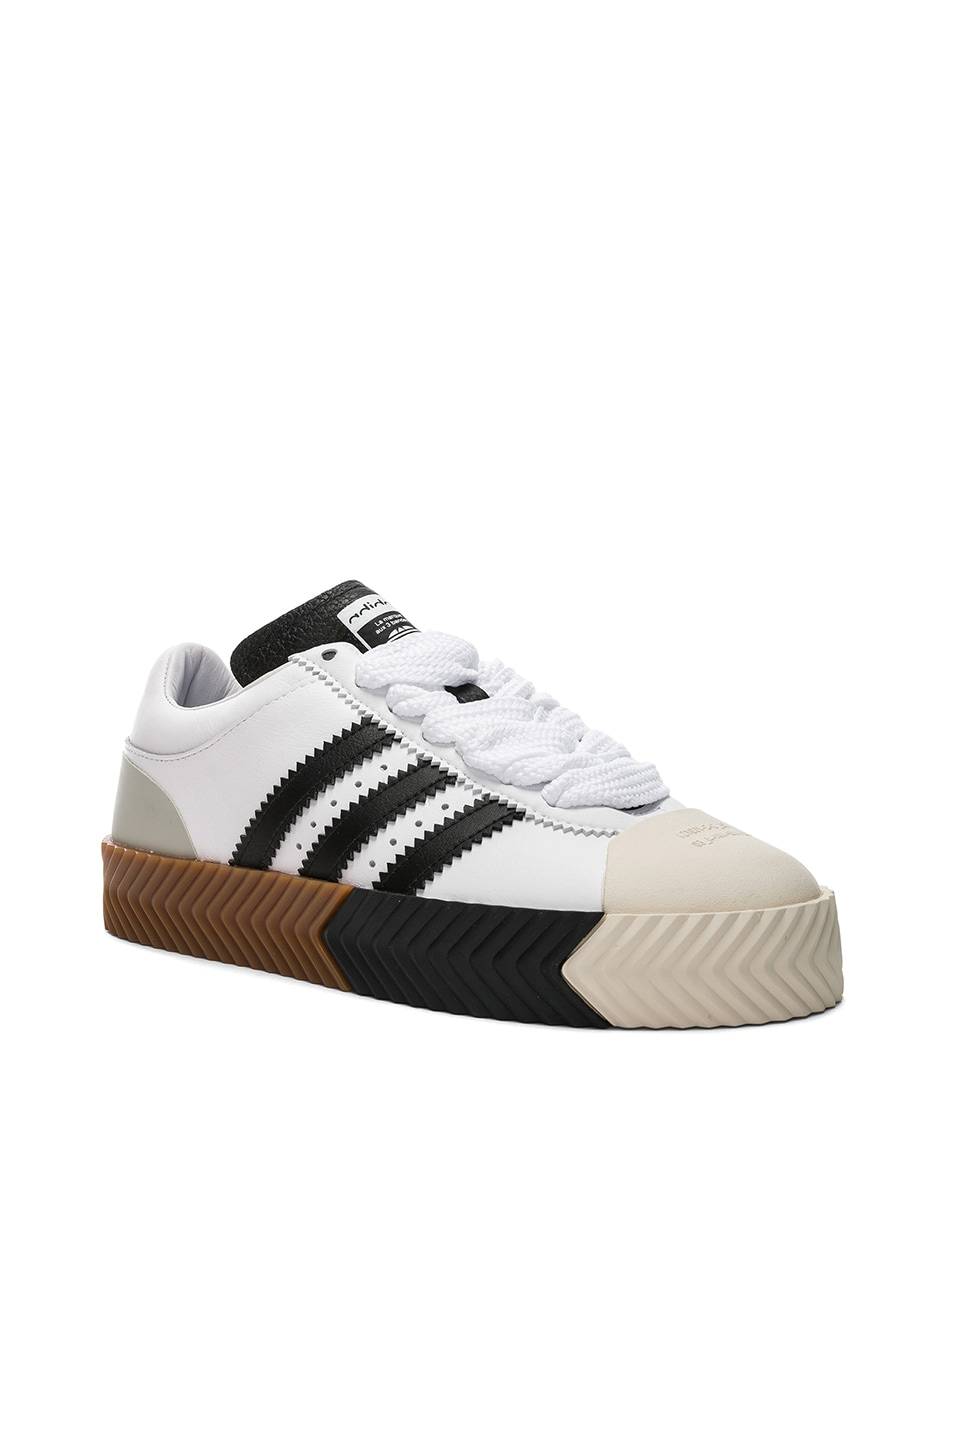 f6453a0a4d77 Image 1 of adidas by Alexander Wang Skate Super in White   Core Black   Tech